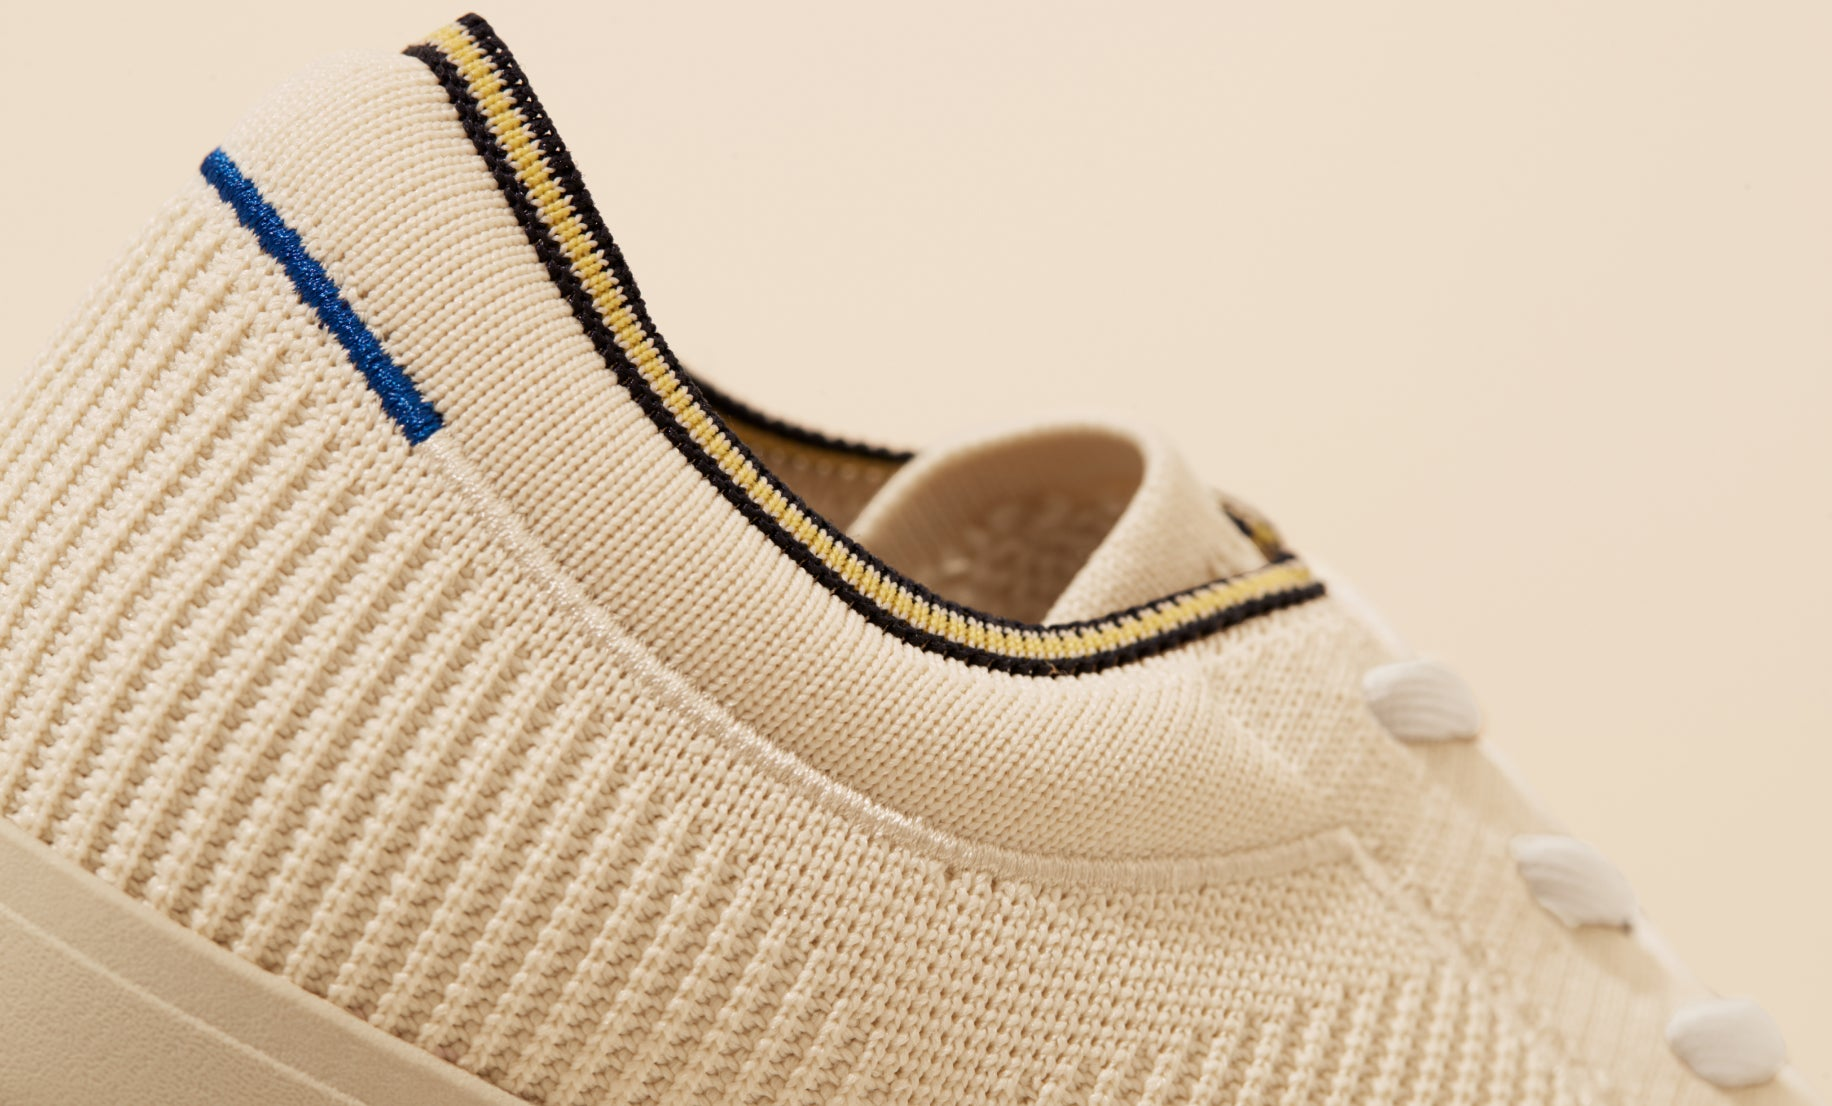 Close up of the plush ankle collar of The Lace Up in Vanilla, showing the navy and yellow striped ankle piping detail.